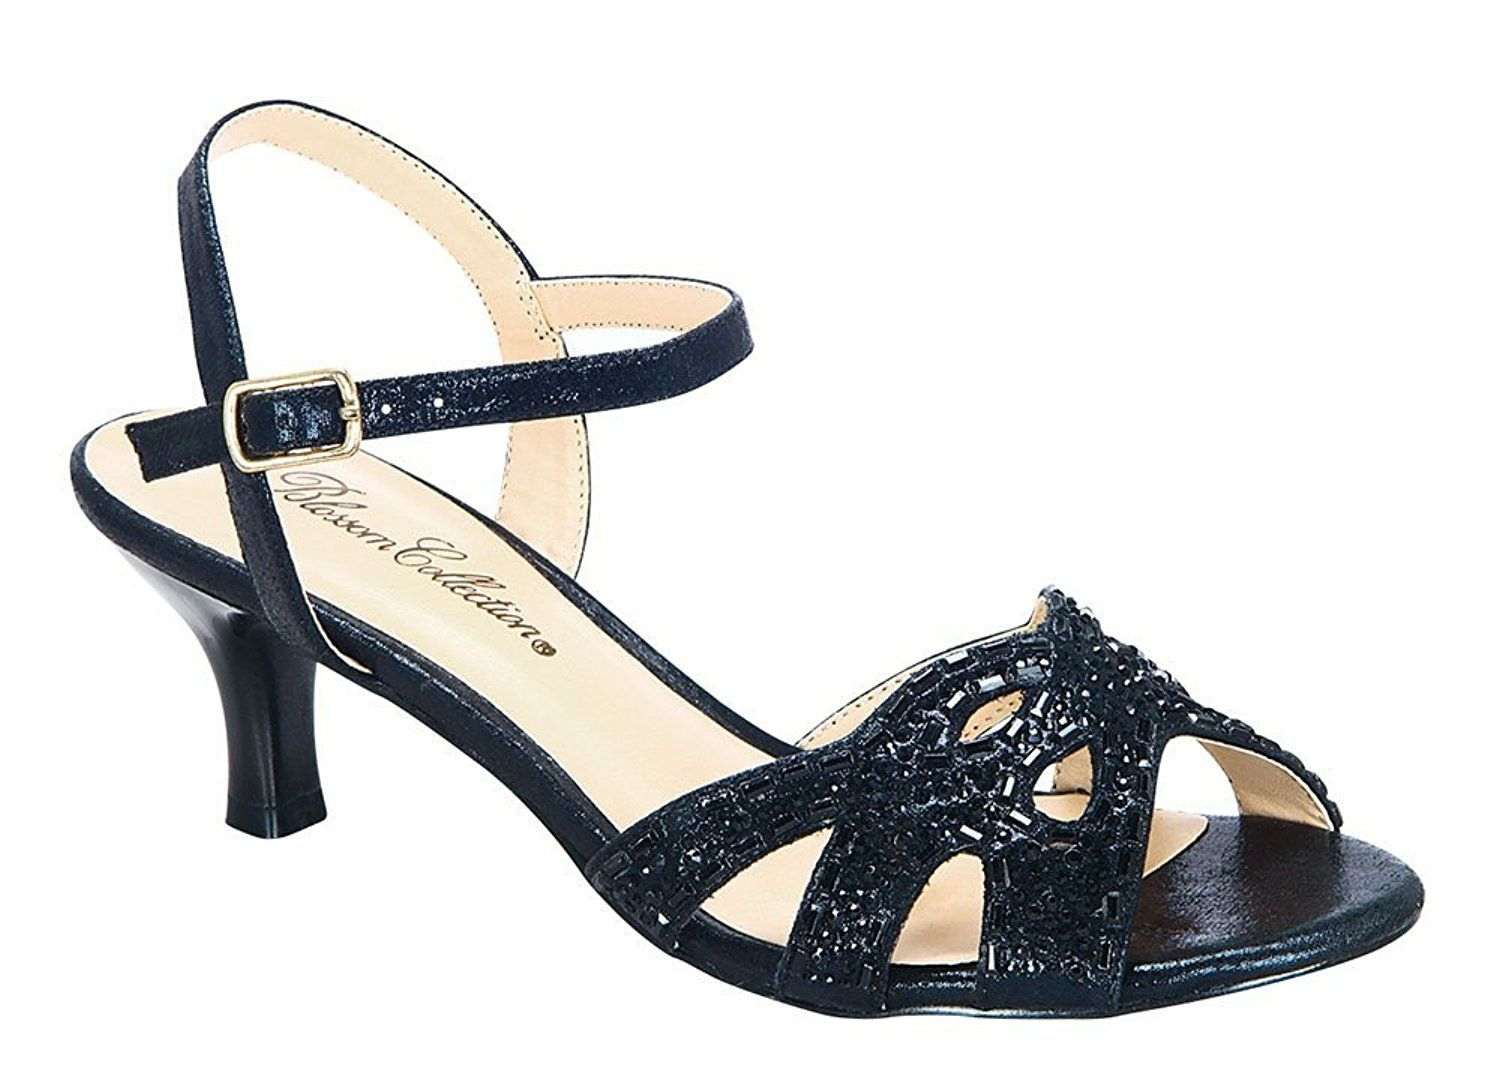 Berk 173 Womena S Rhinestone Open Toe Low Kitten Heel Formal Sandal Additional Details Found At The Image Link La Lace Up Sandals Sandals Womens Sandals